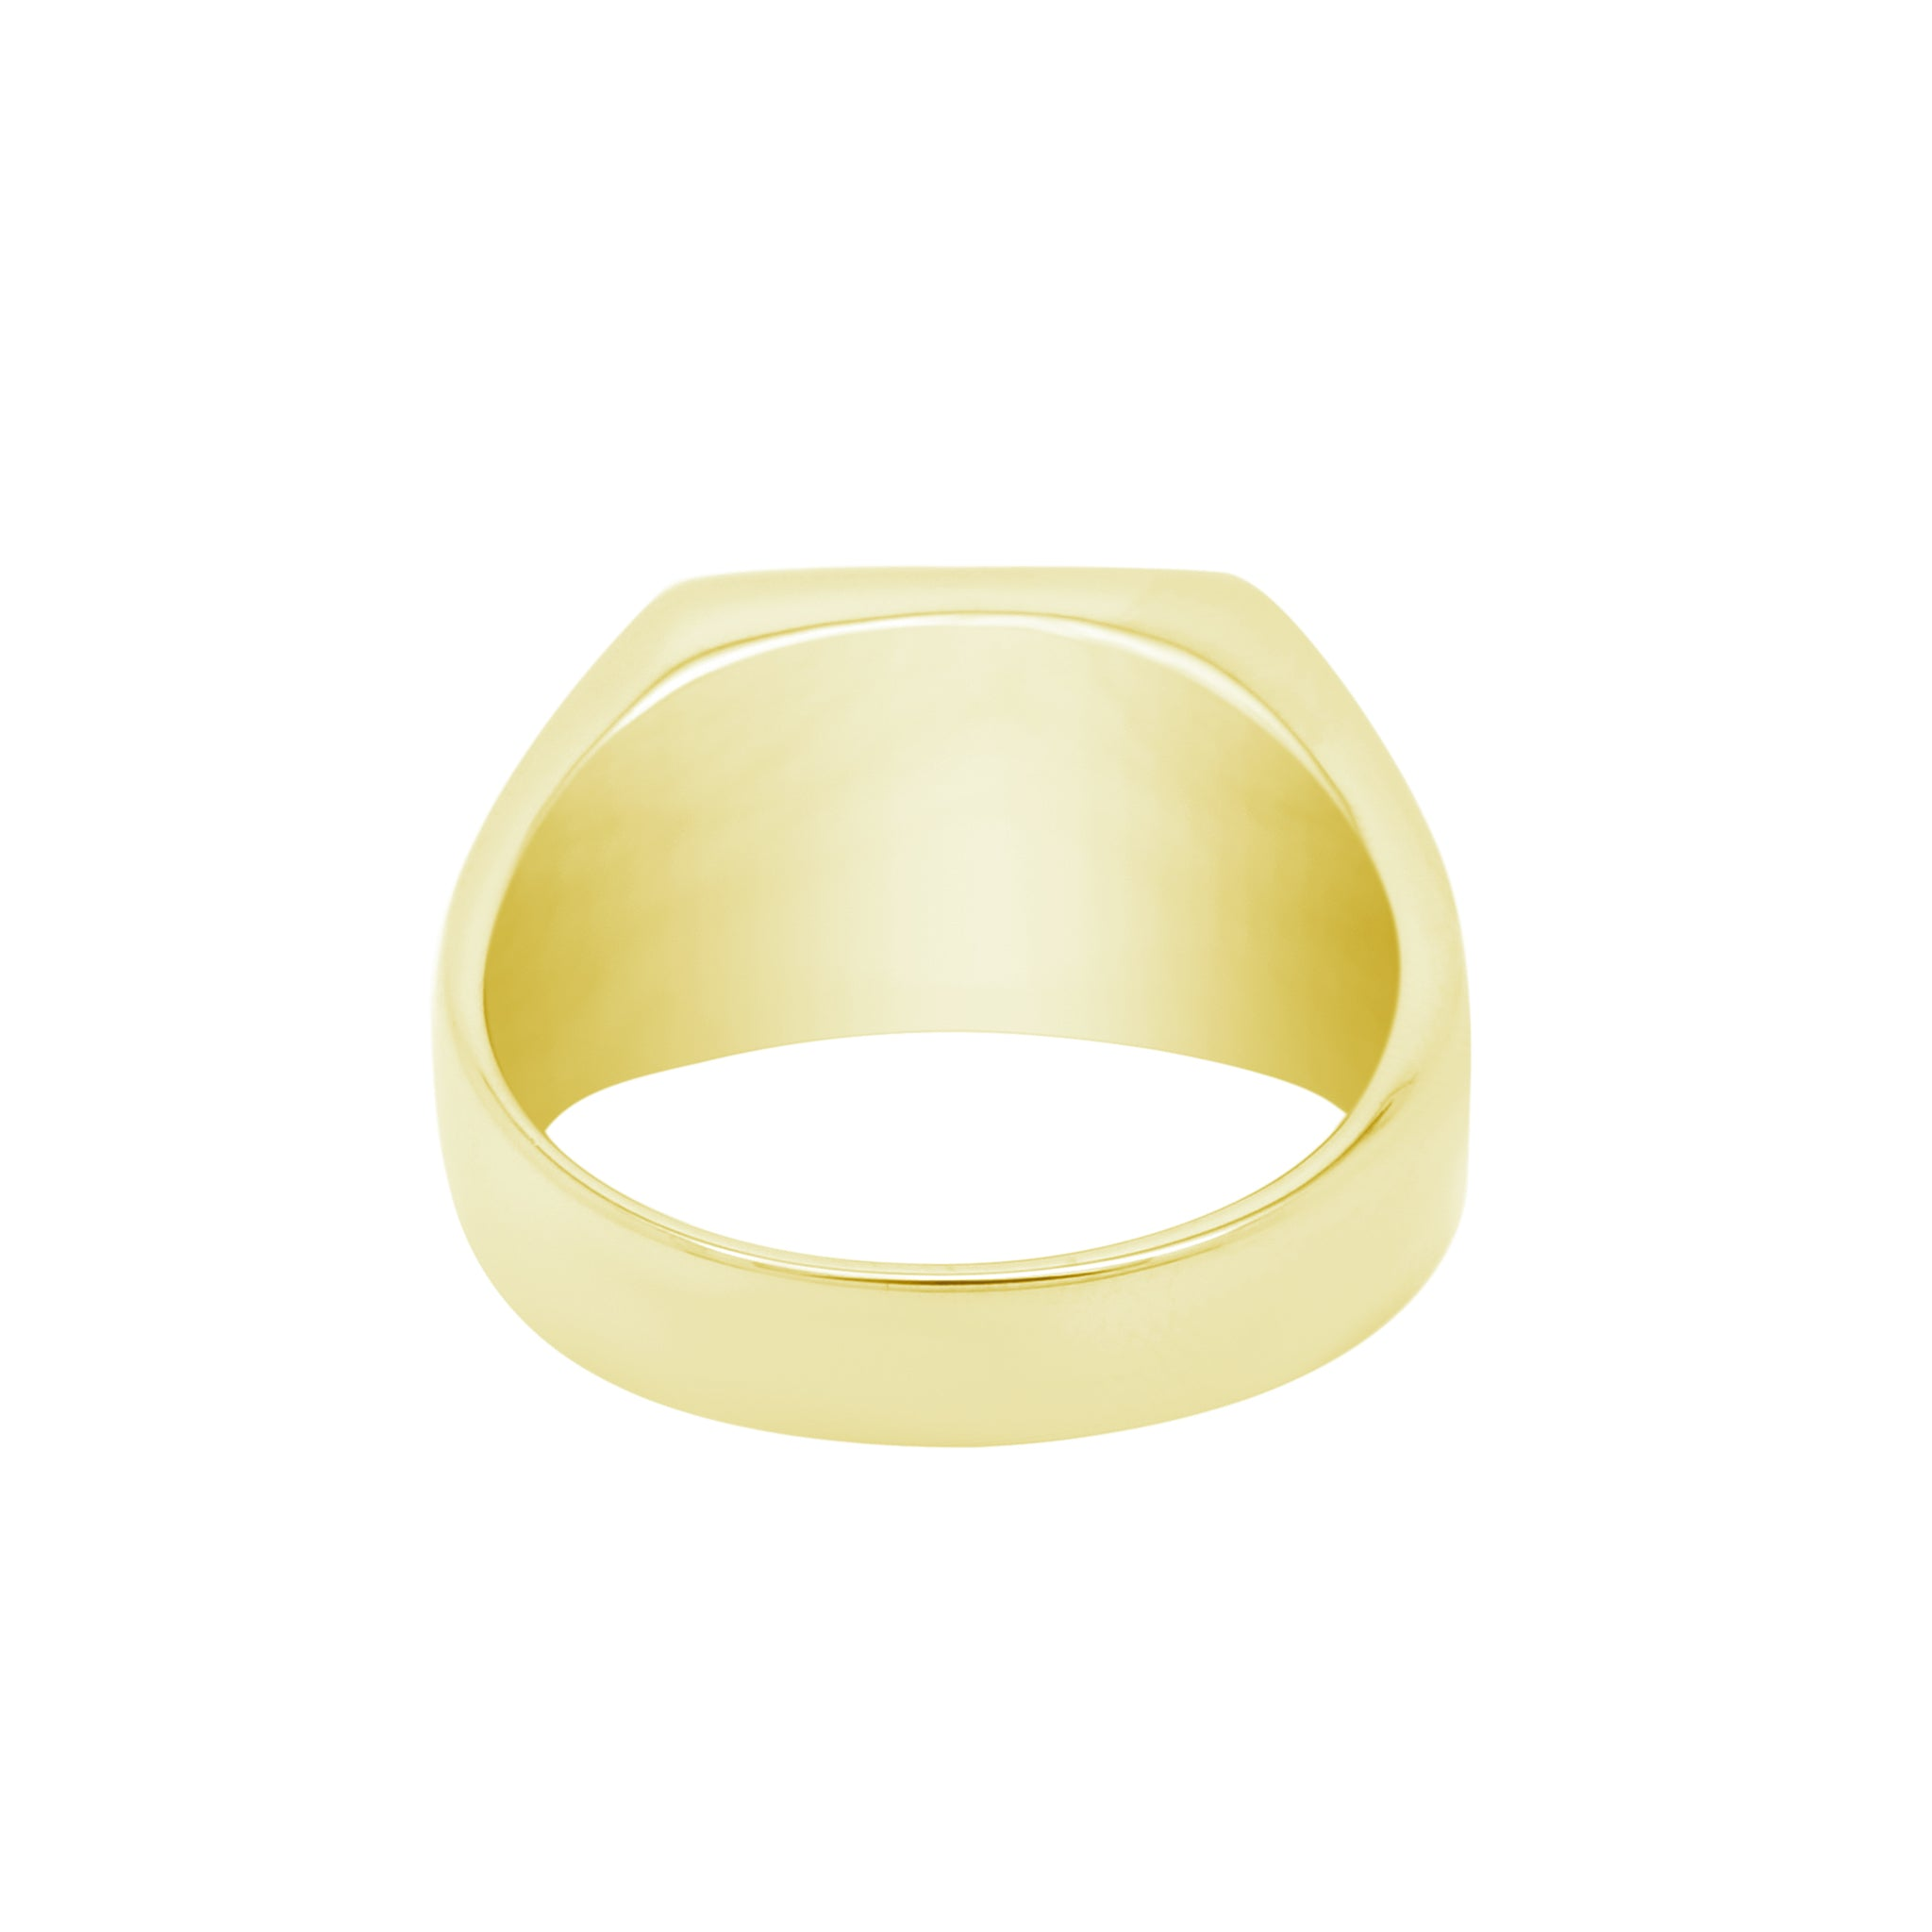 STAINLESS STEEL SIGNET RING - GOLD